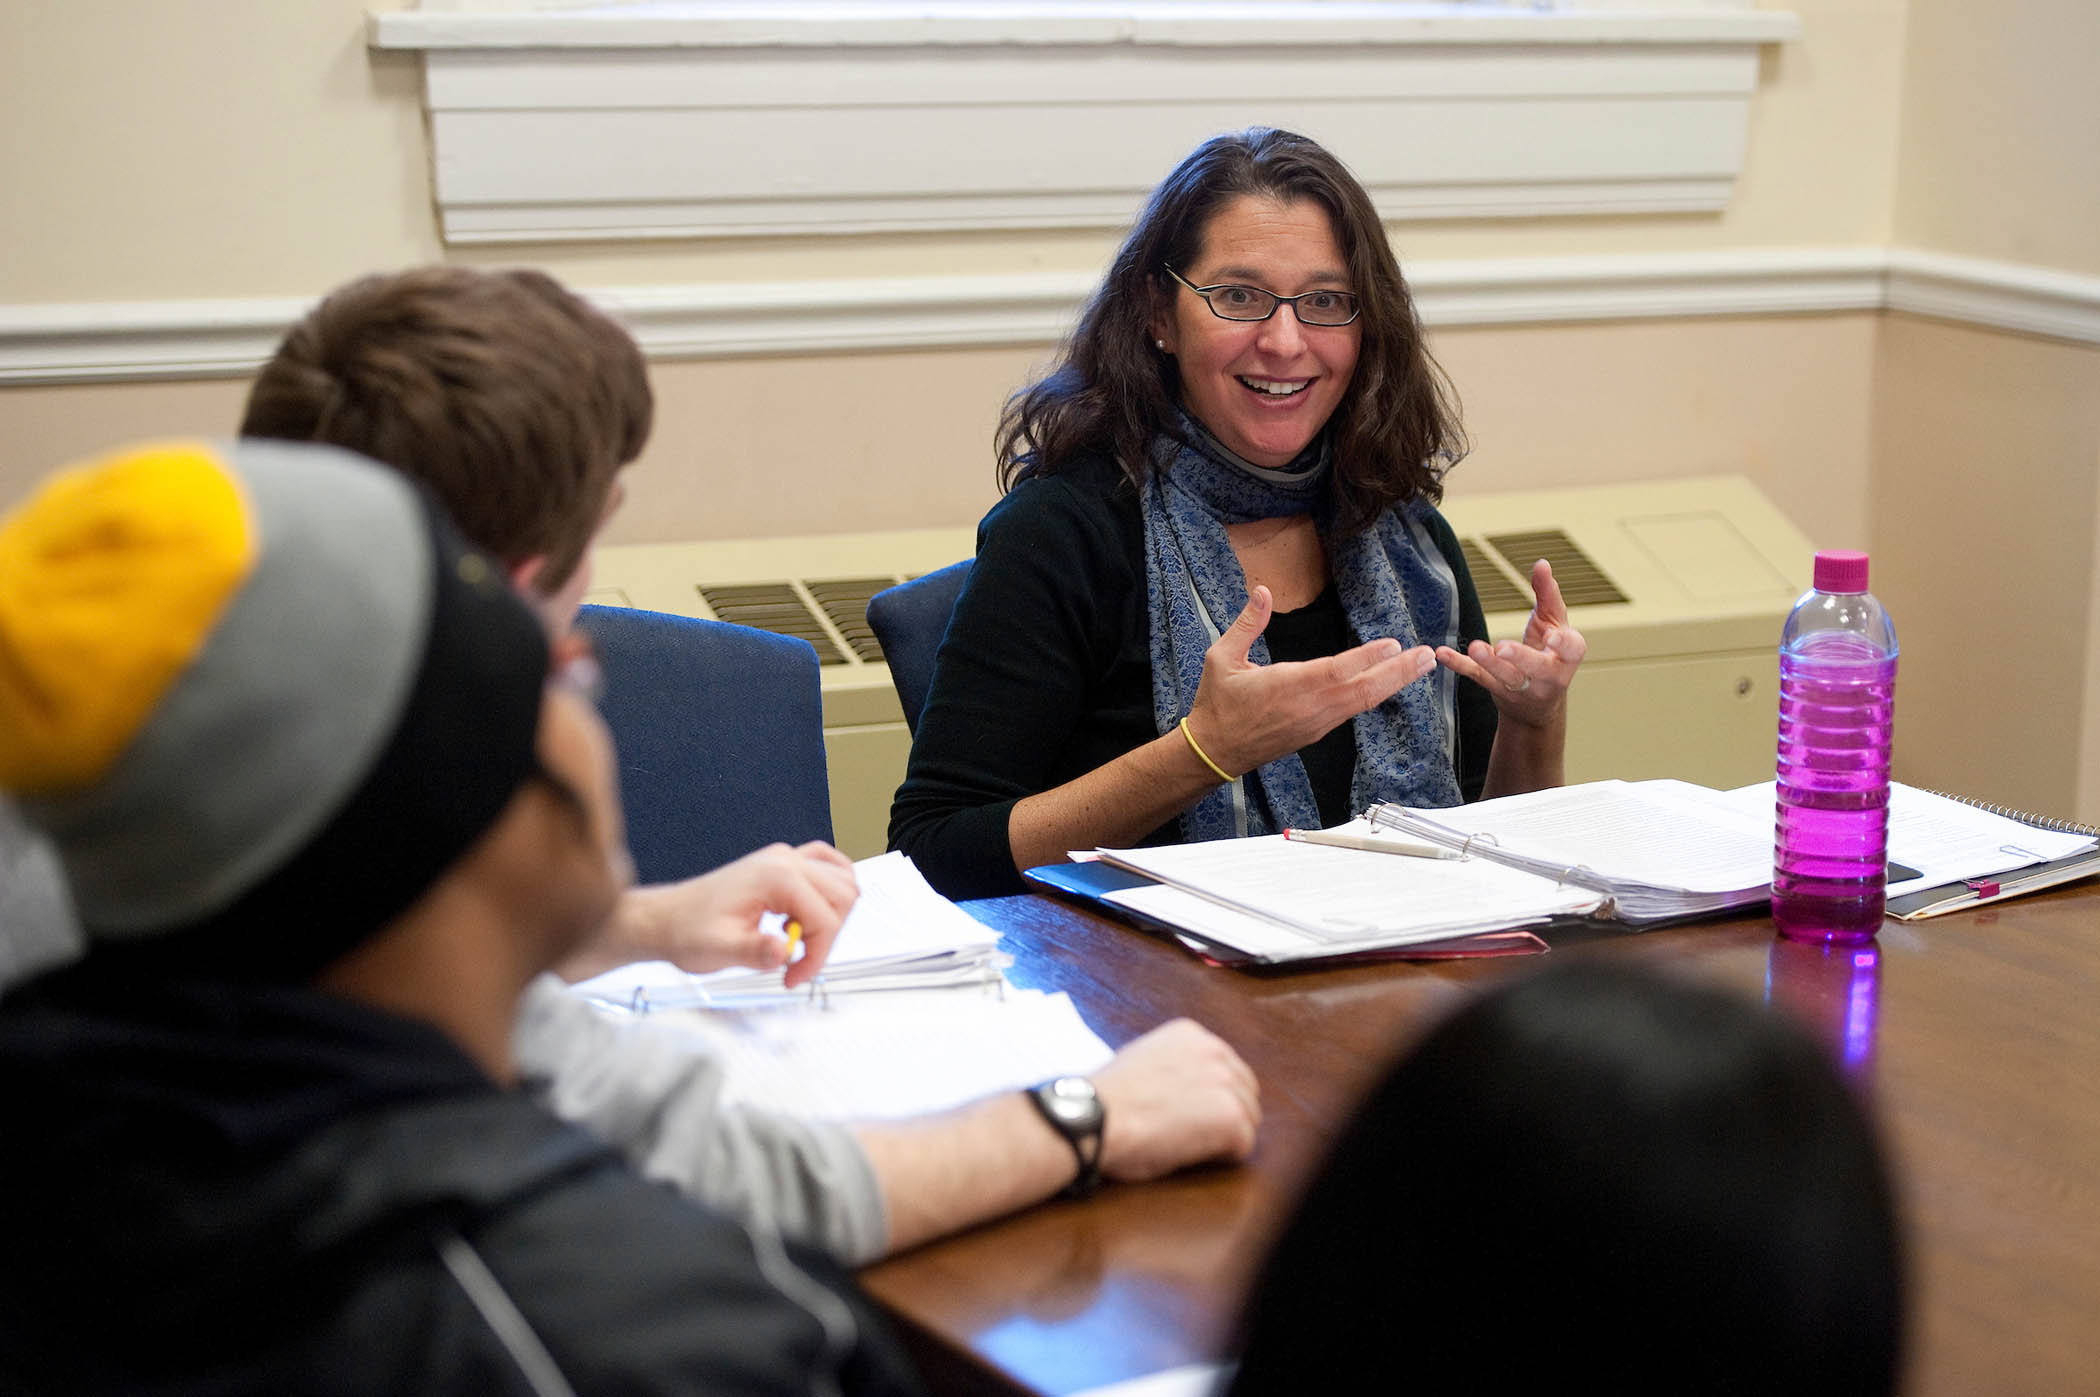 English professor Mara Amster leads a discussion group